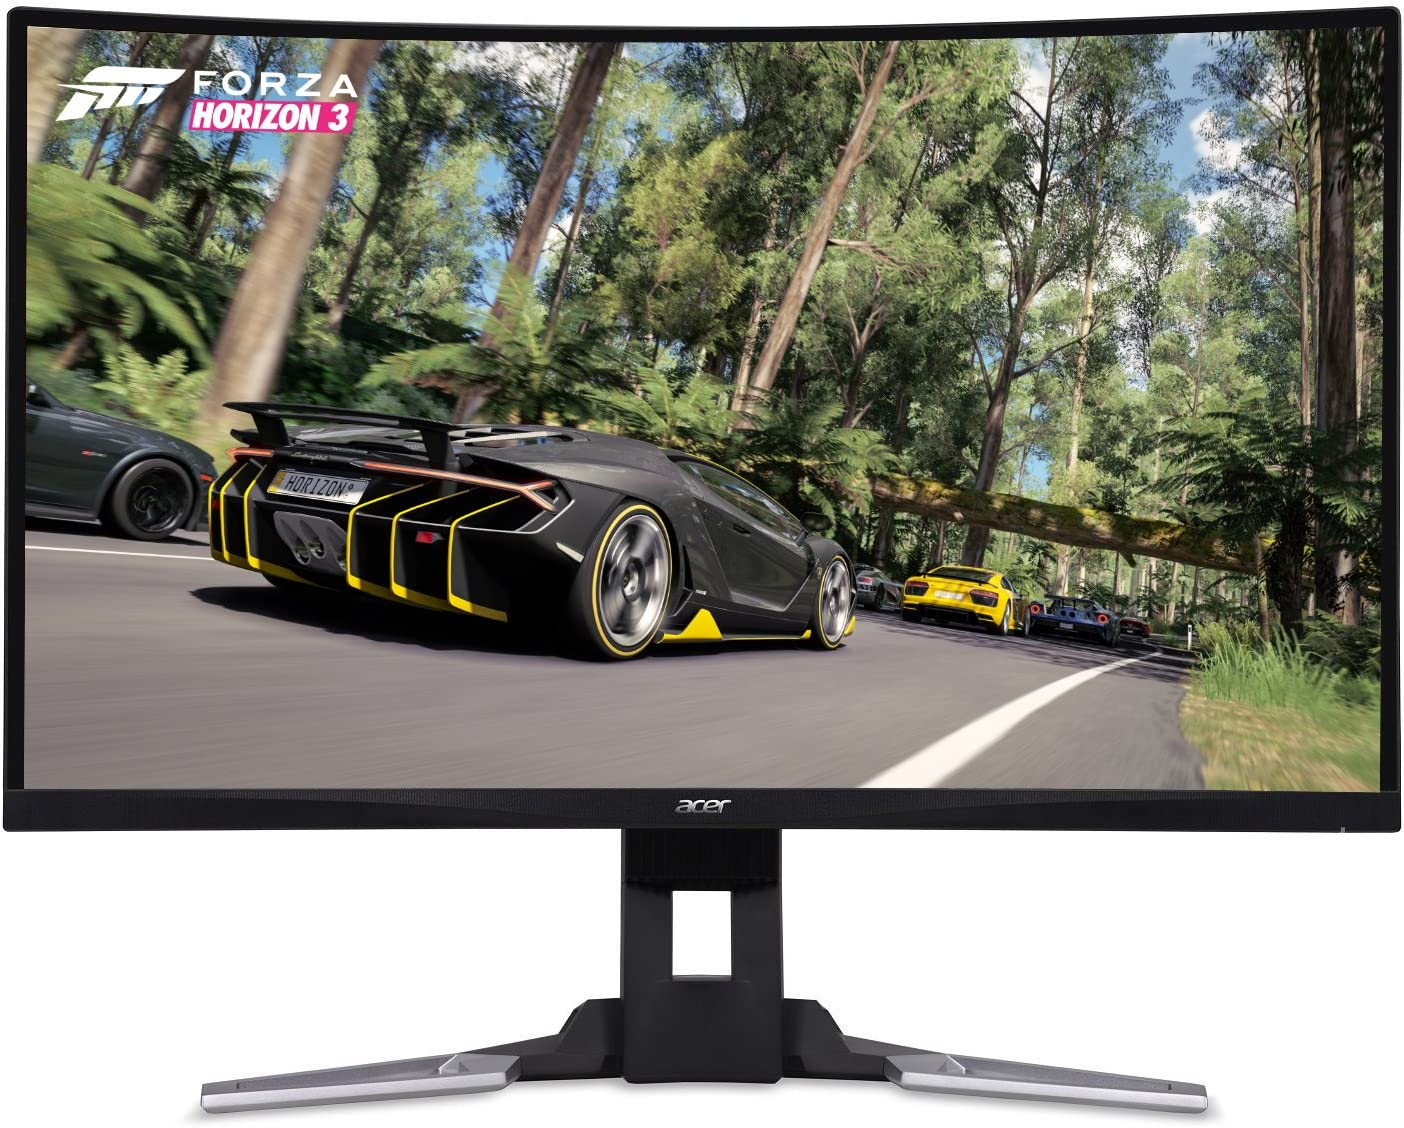 "Acer XZ321QU bmijpphzx 31.5"" Curved WQHD (2560 x 1440) Monitor with AMD FREESYNC Technology 